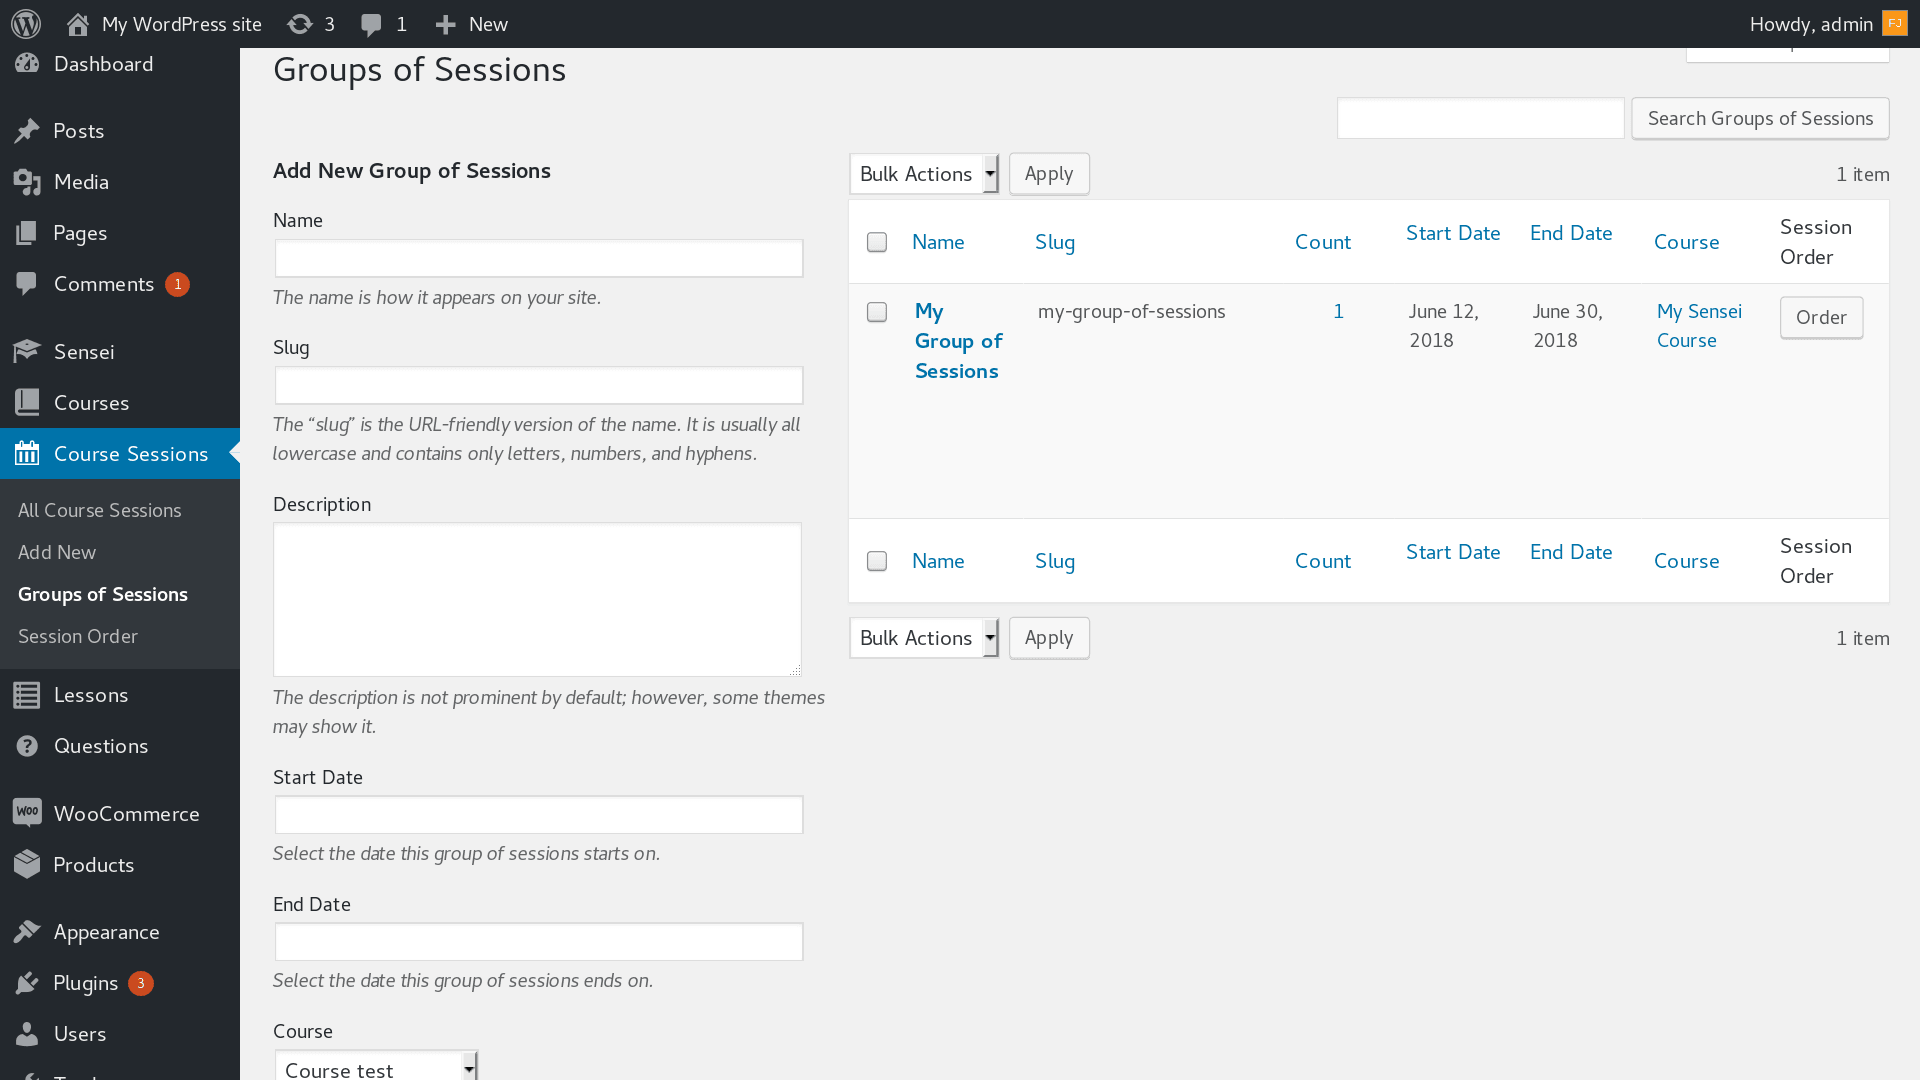 Group of Sessions screen. Add and manage Group of Sessions.